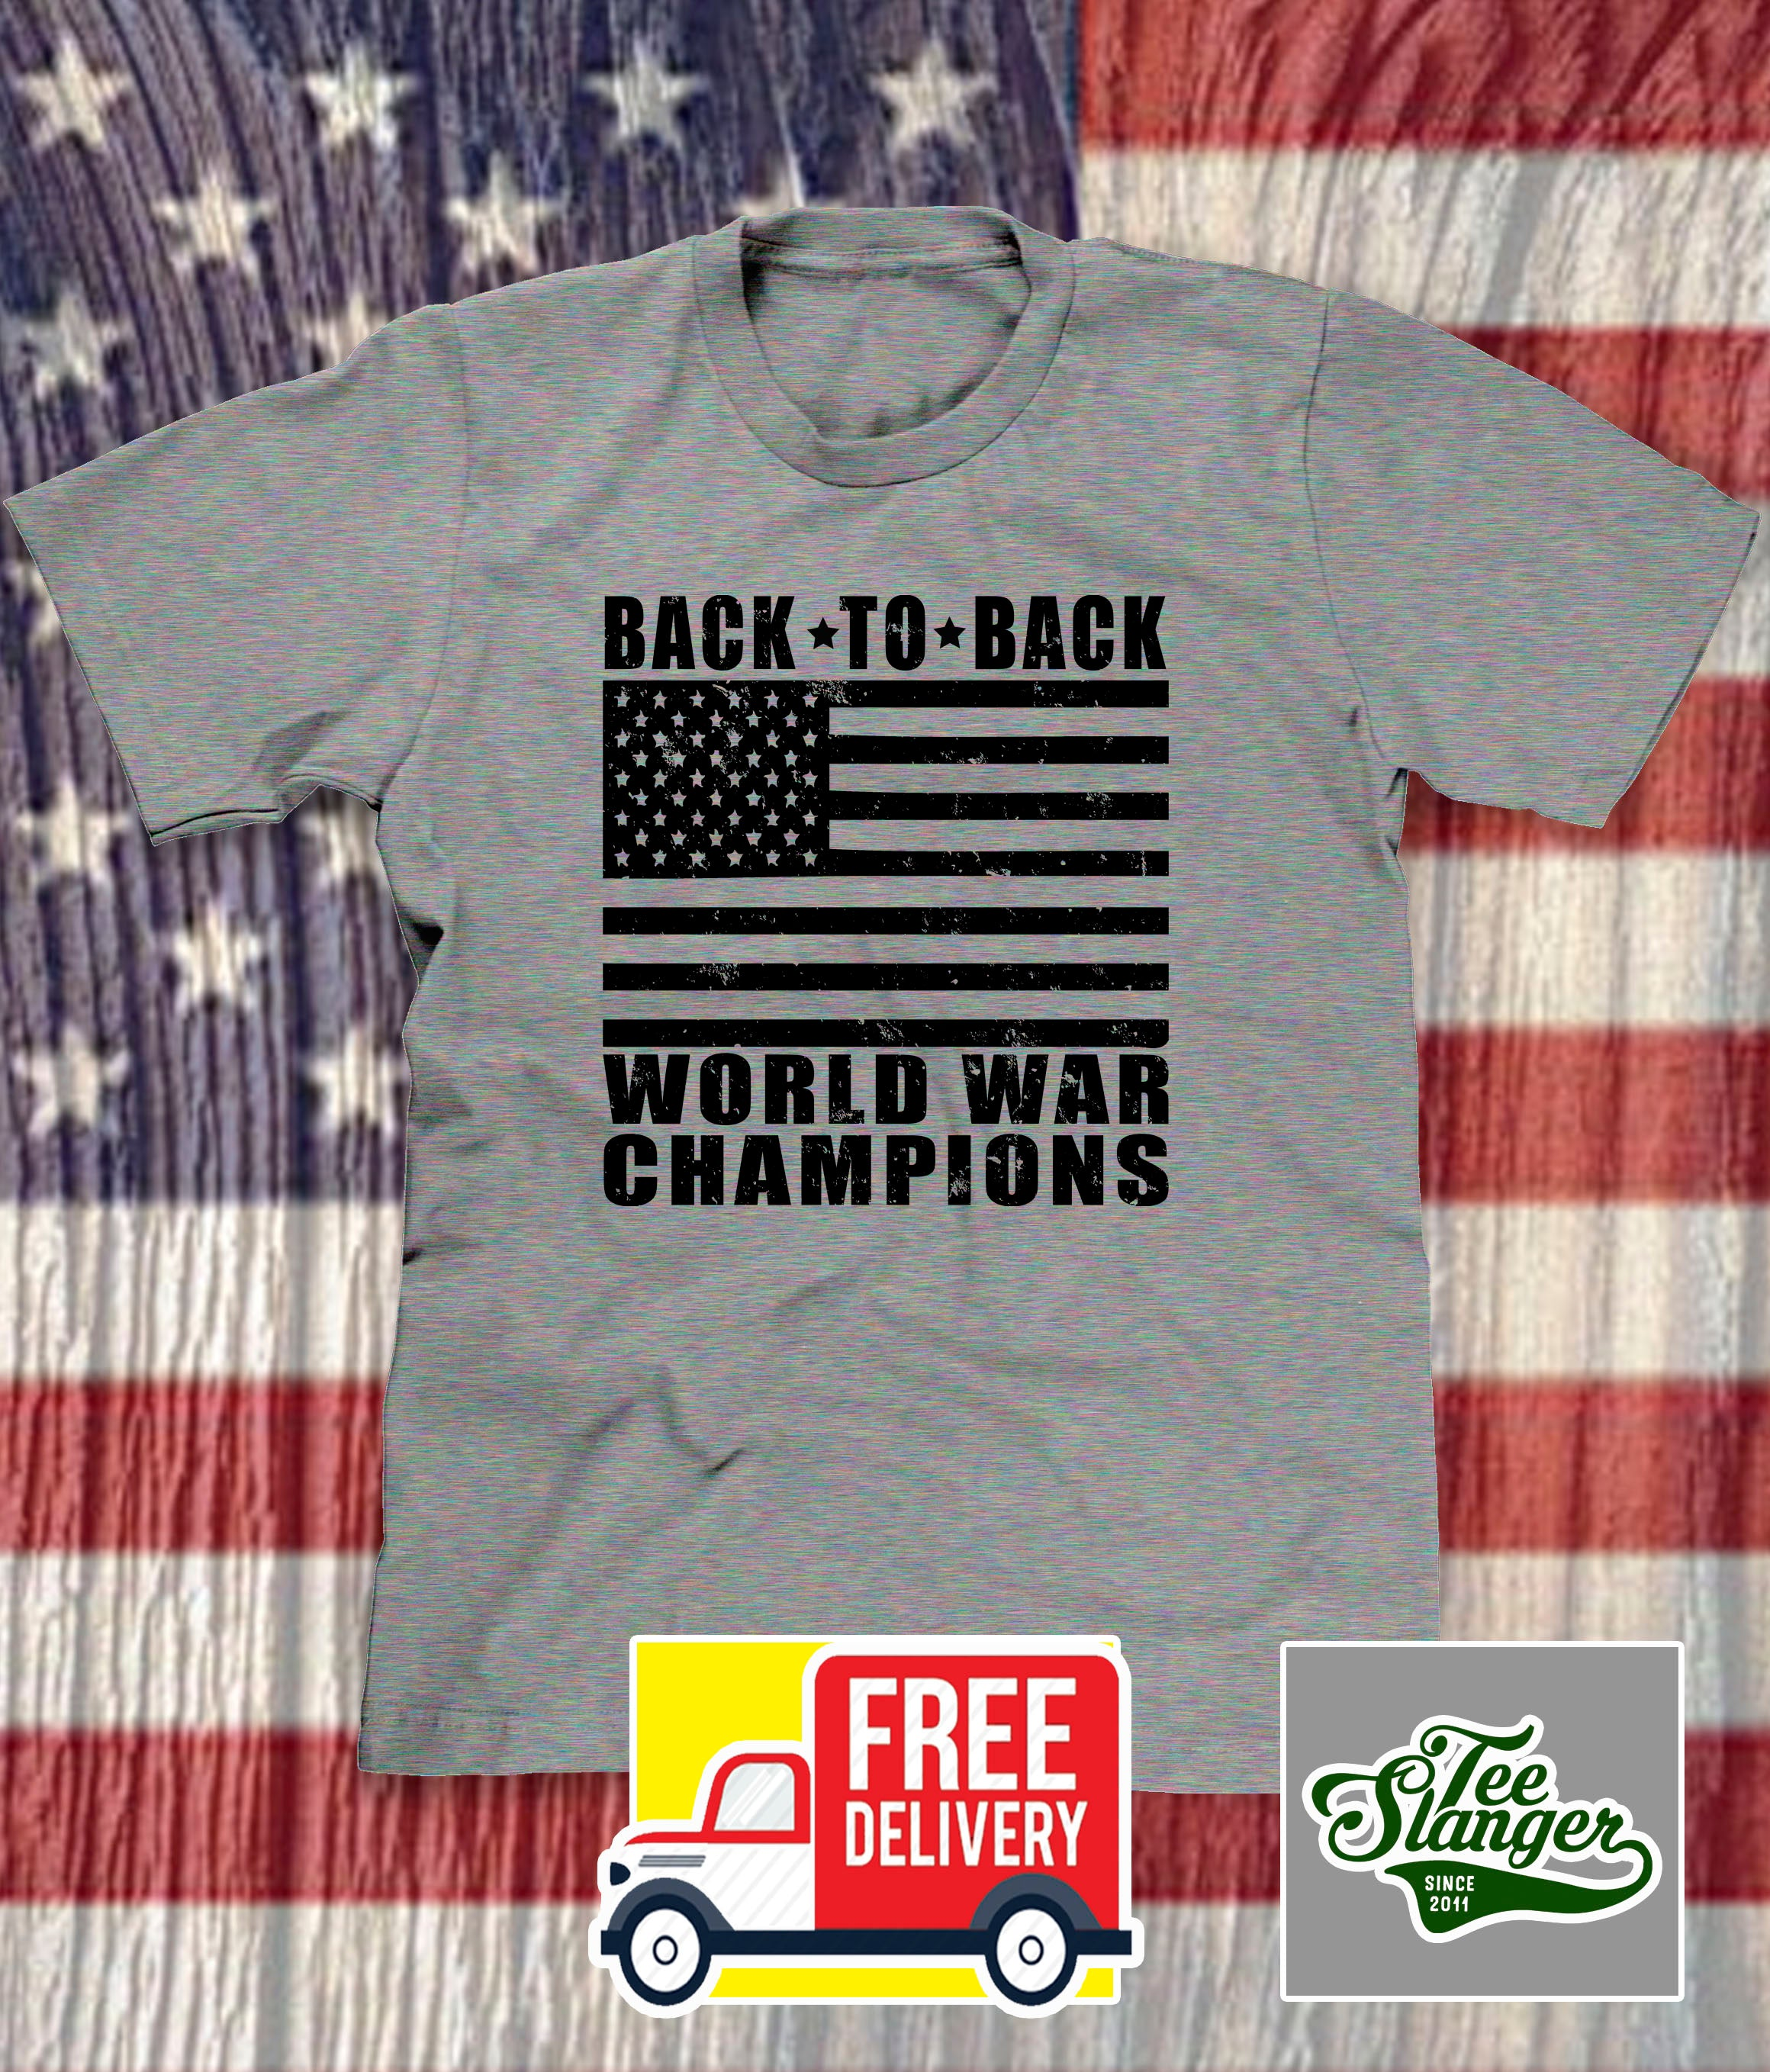 BACK TO BACK WORLD WAR CHAMPIONS T-SHIRT